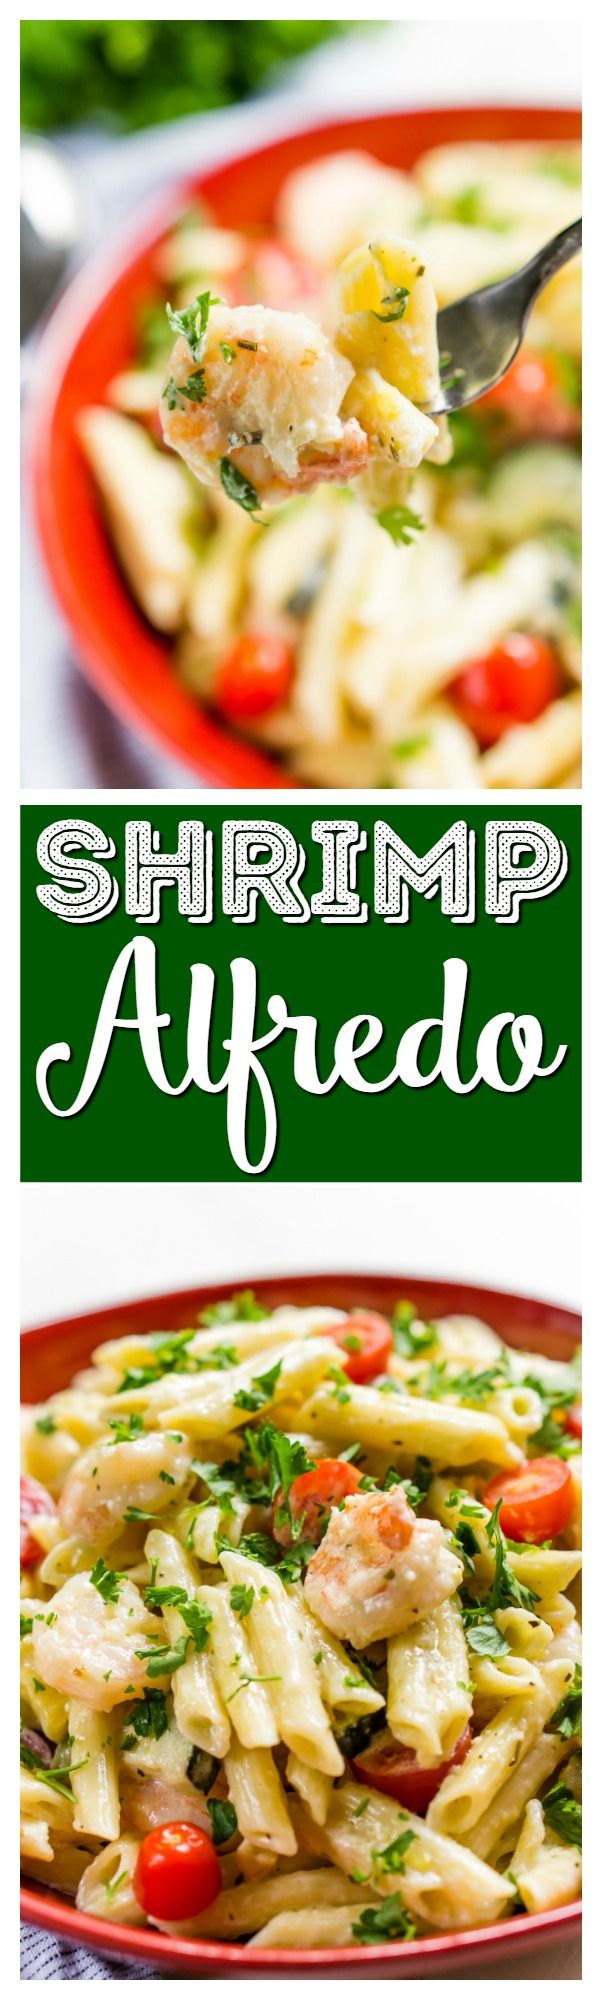 This Shrimp Alfredo is loaded with delicious shrimp, fresh veggies, and a creamy alfredo sauce that will have the whole family running to the table! Serve it up with the pasta of your choice! via @sugarandsoulco